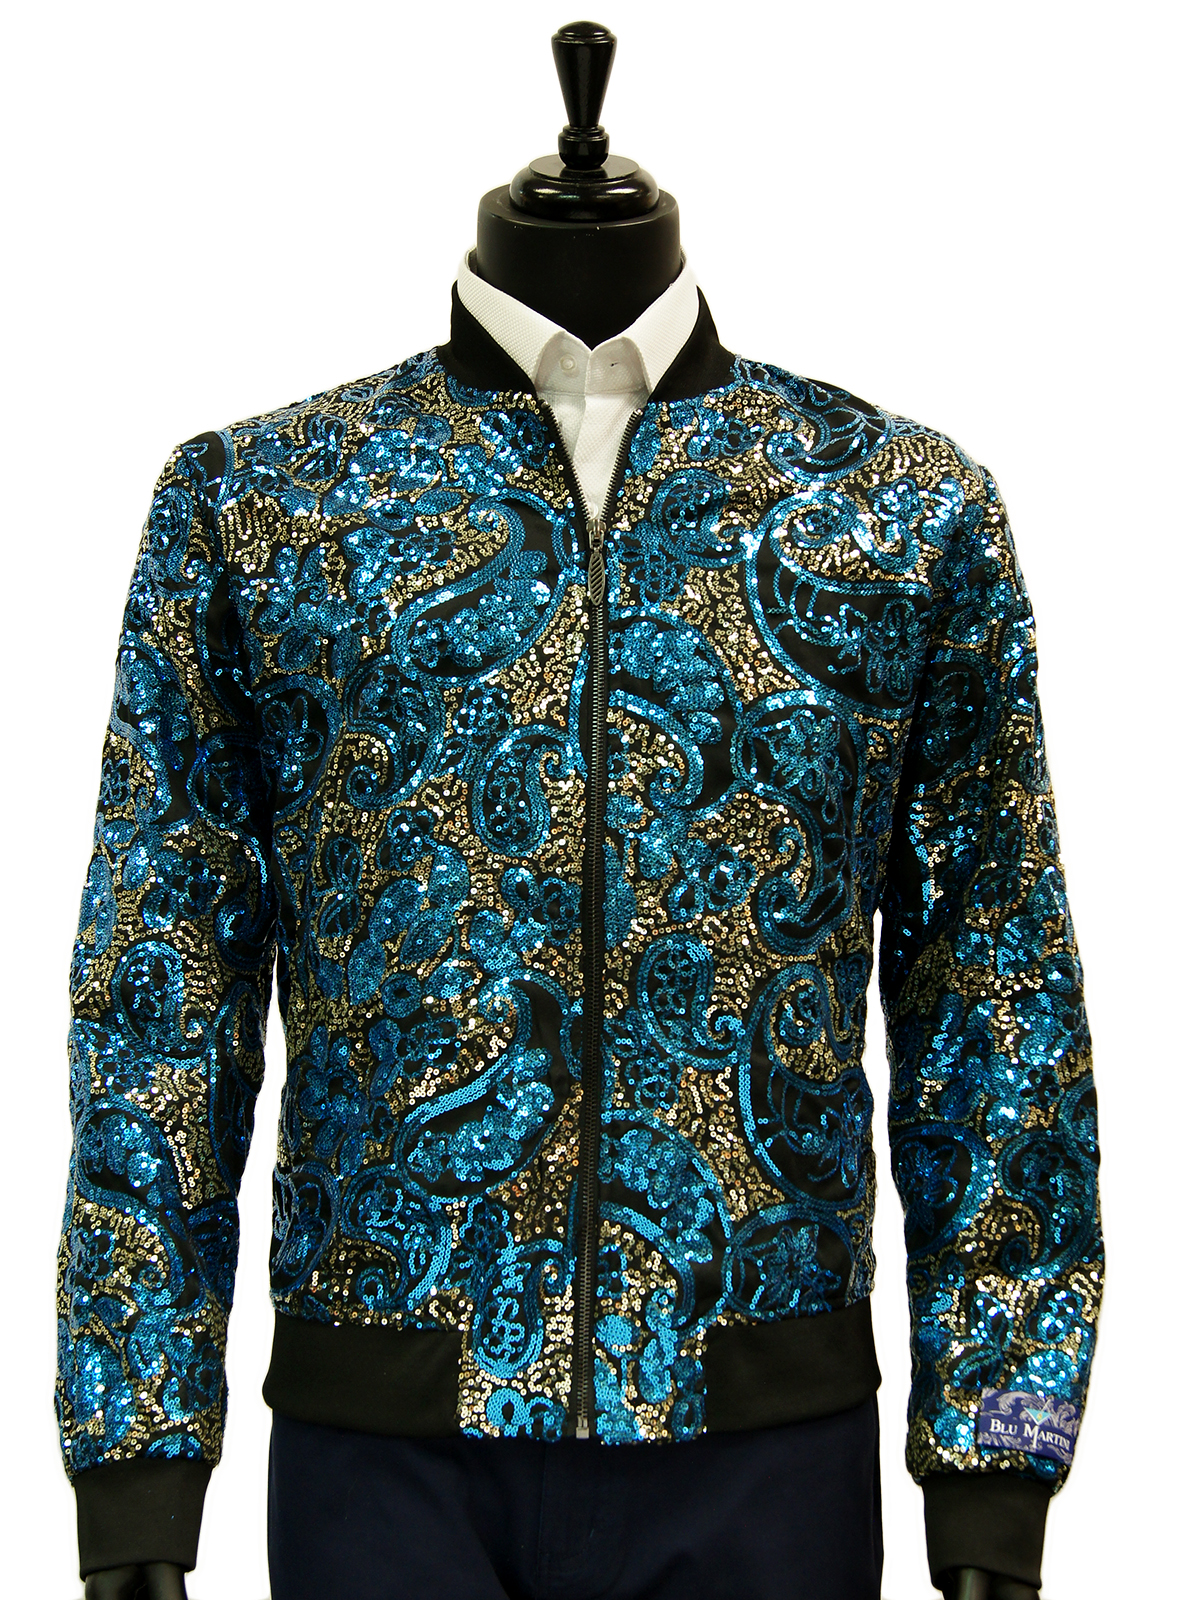 03d0d59c8 Blu Martini Blue Gold Multi Color Sequin Paisley Design Trendy Bomber Zip  Up Fun Jacket